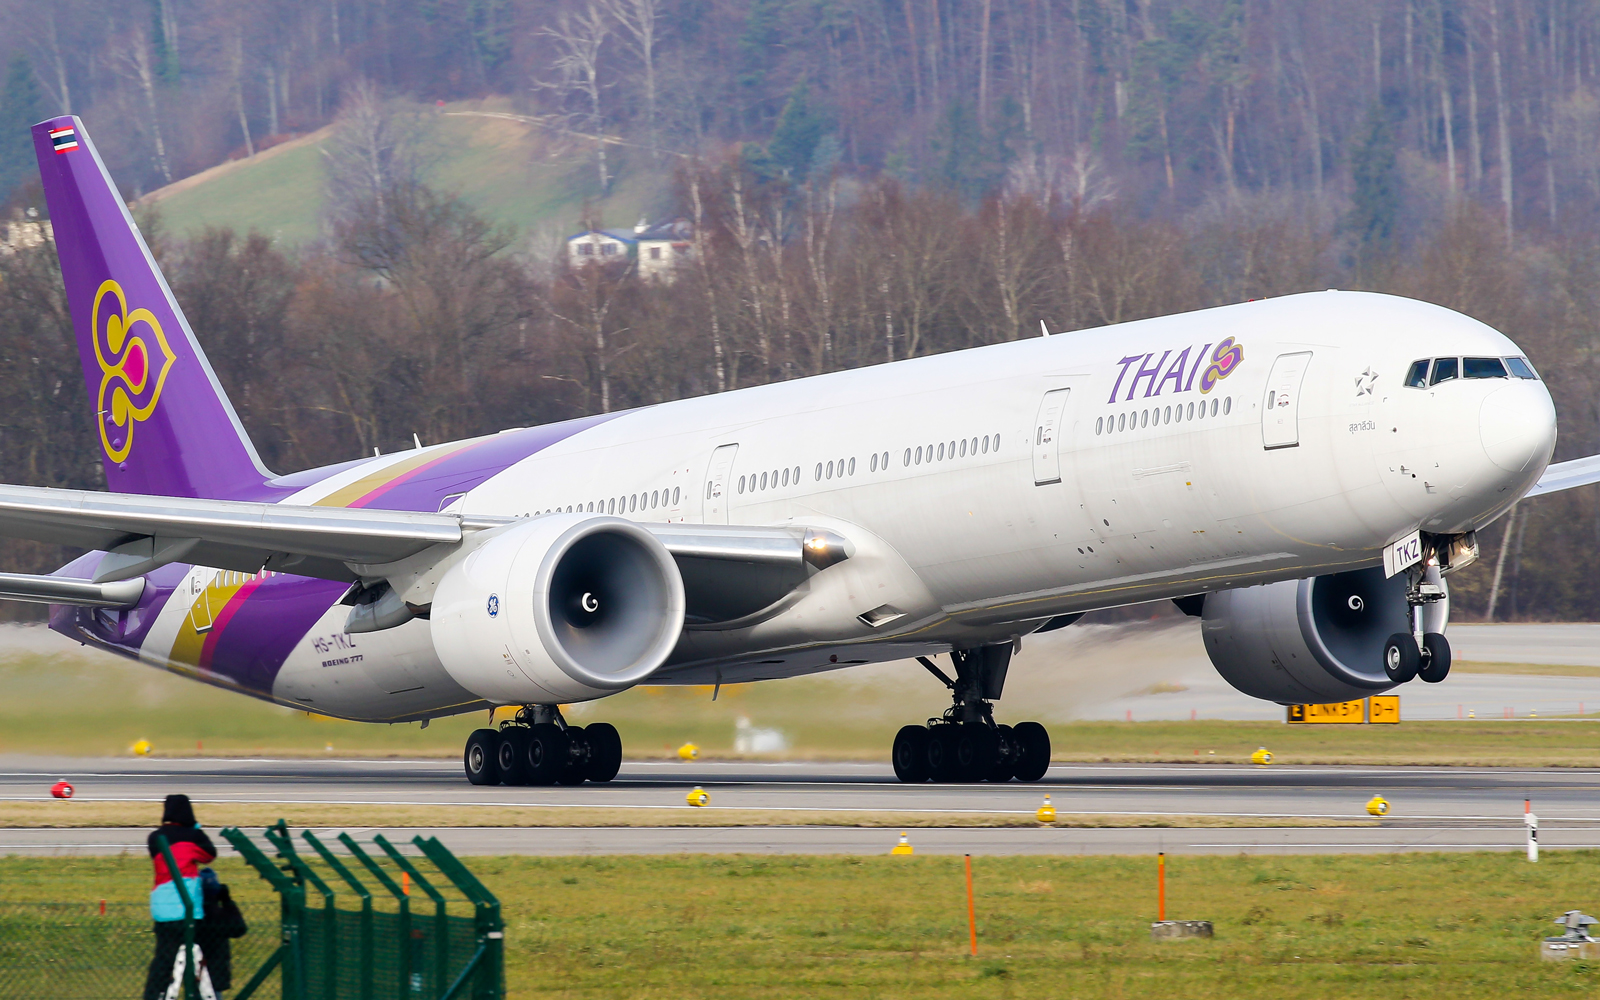 Thai Airways Boeing 777-300ER aircraft